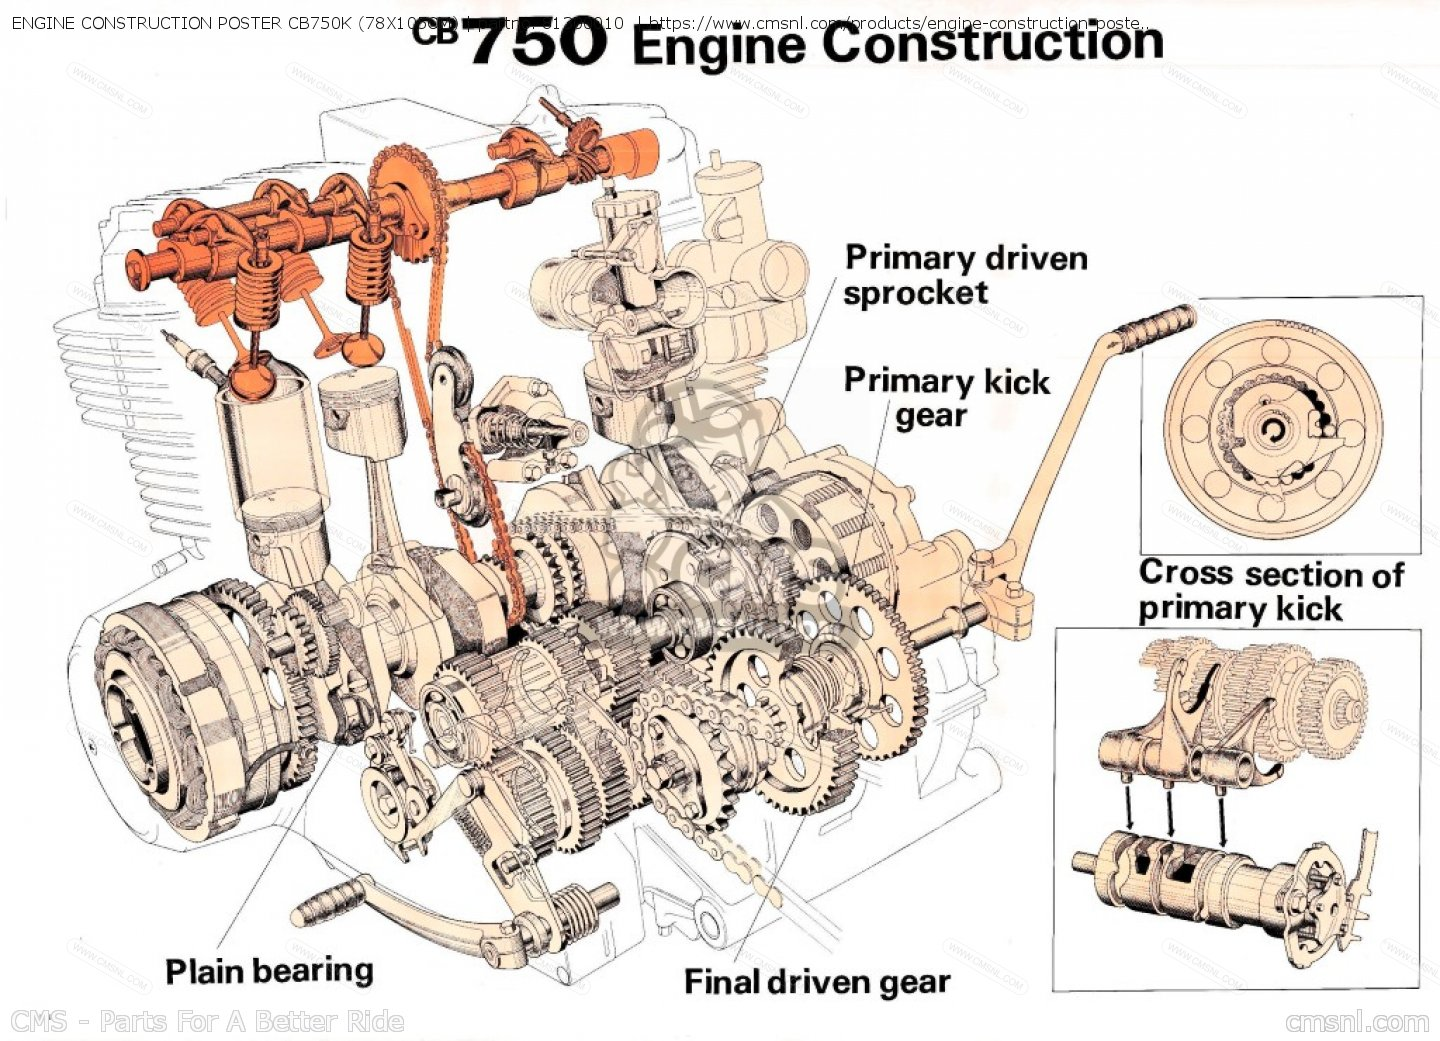 81300010 Engine Construction Poster Cb750k 78x105cm Honda 81300 010